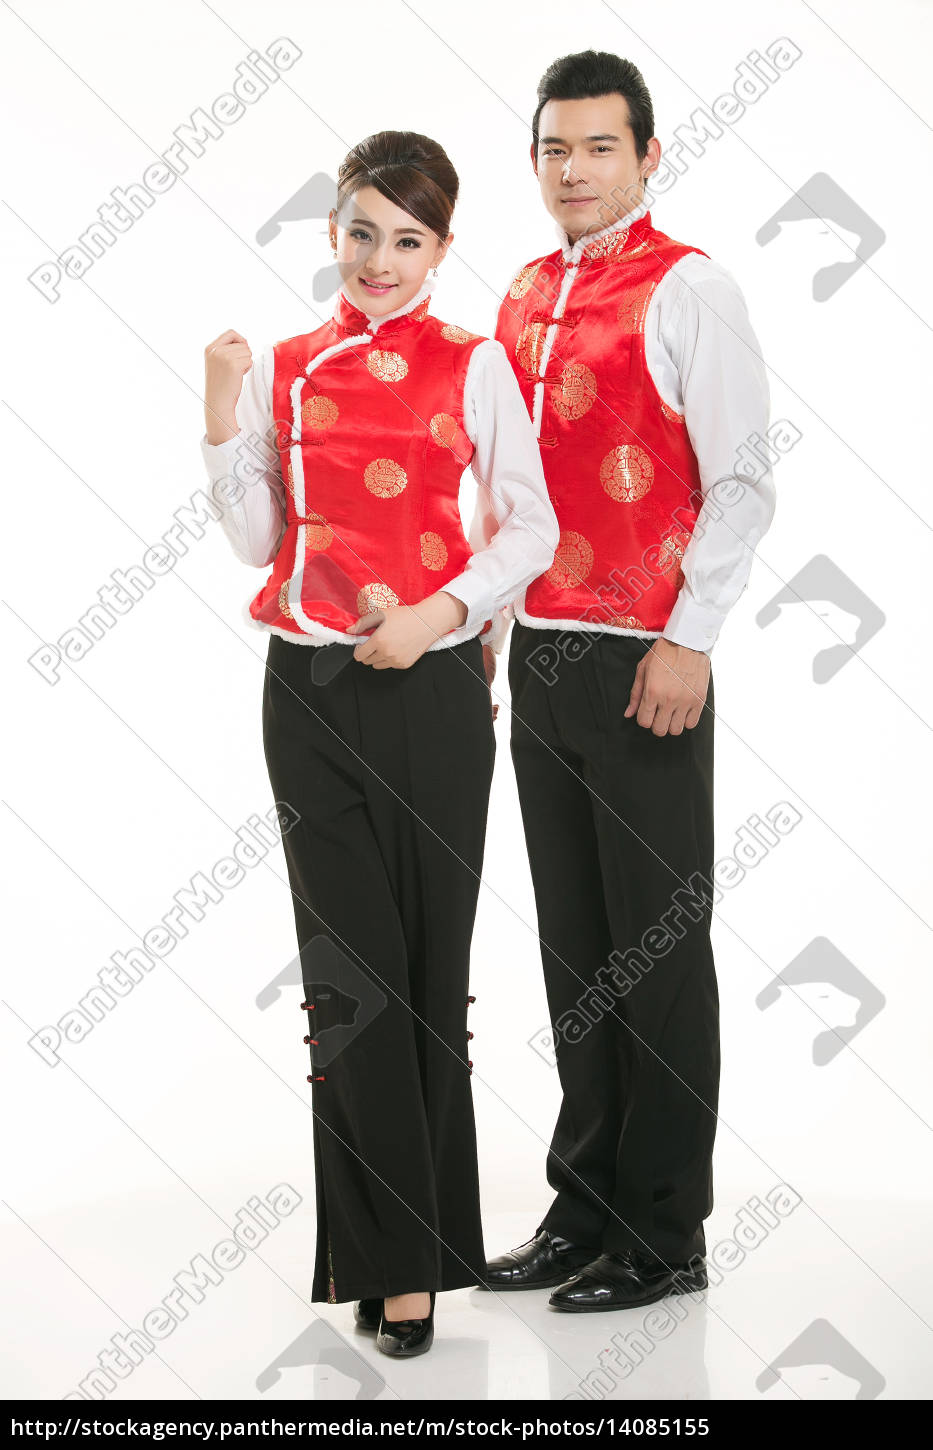 wearing, chinese, clothing, waiter, in, front - 14085155